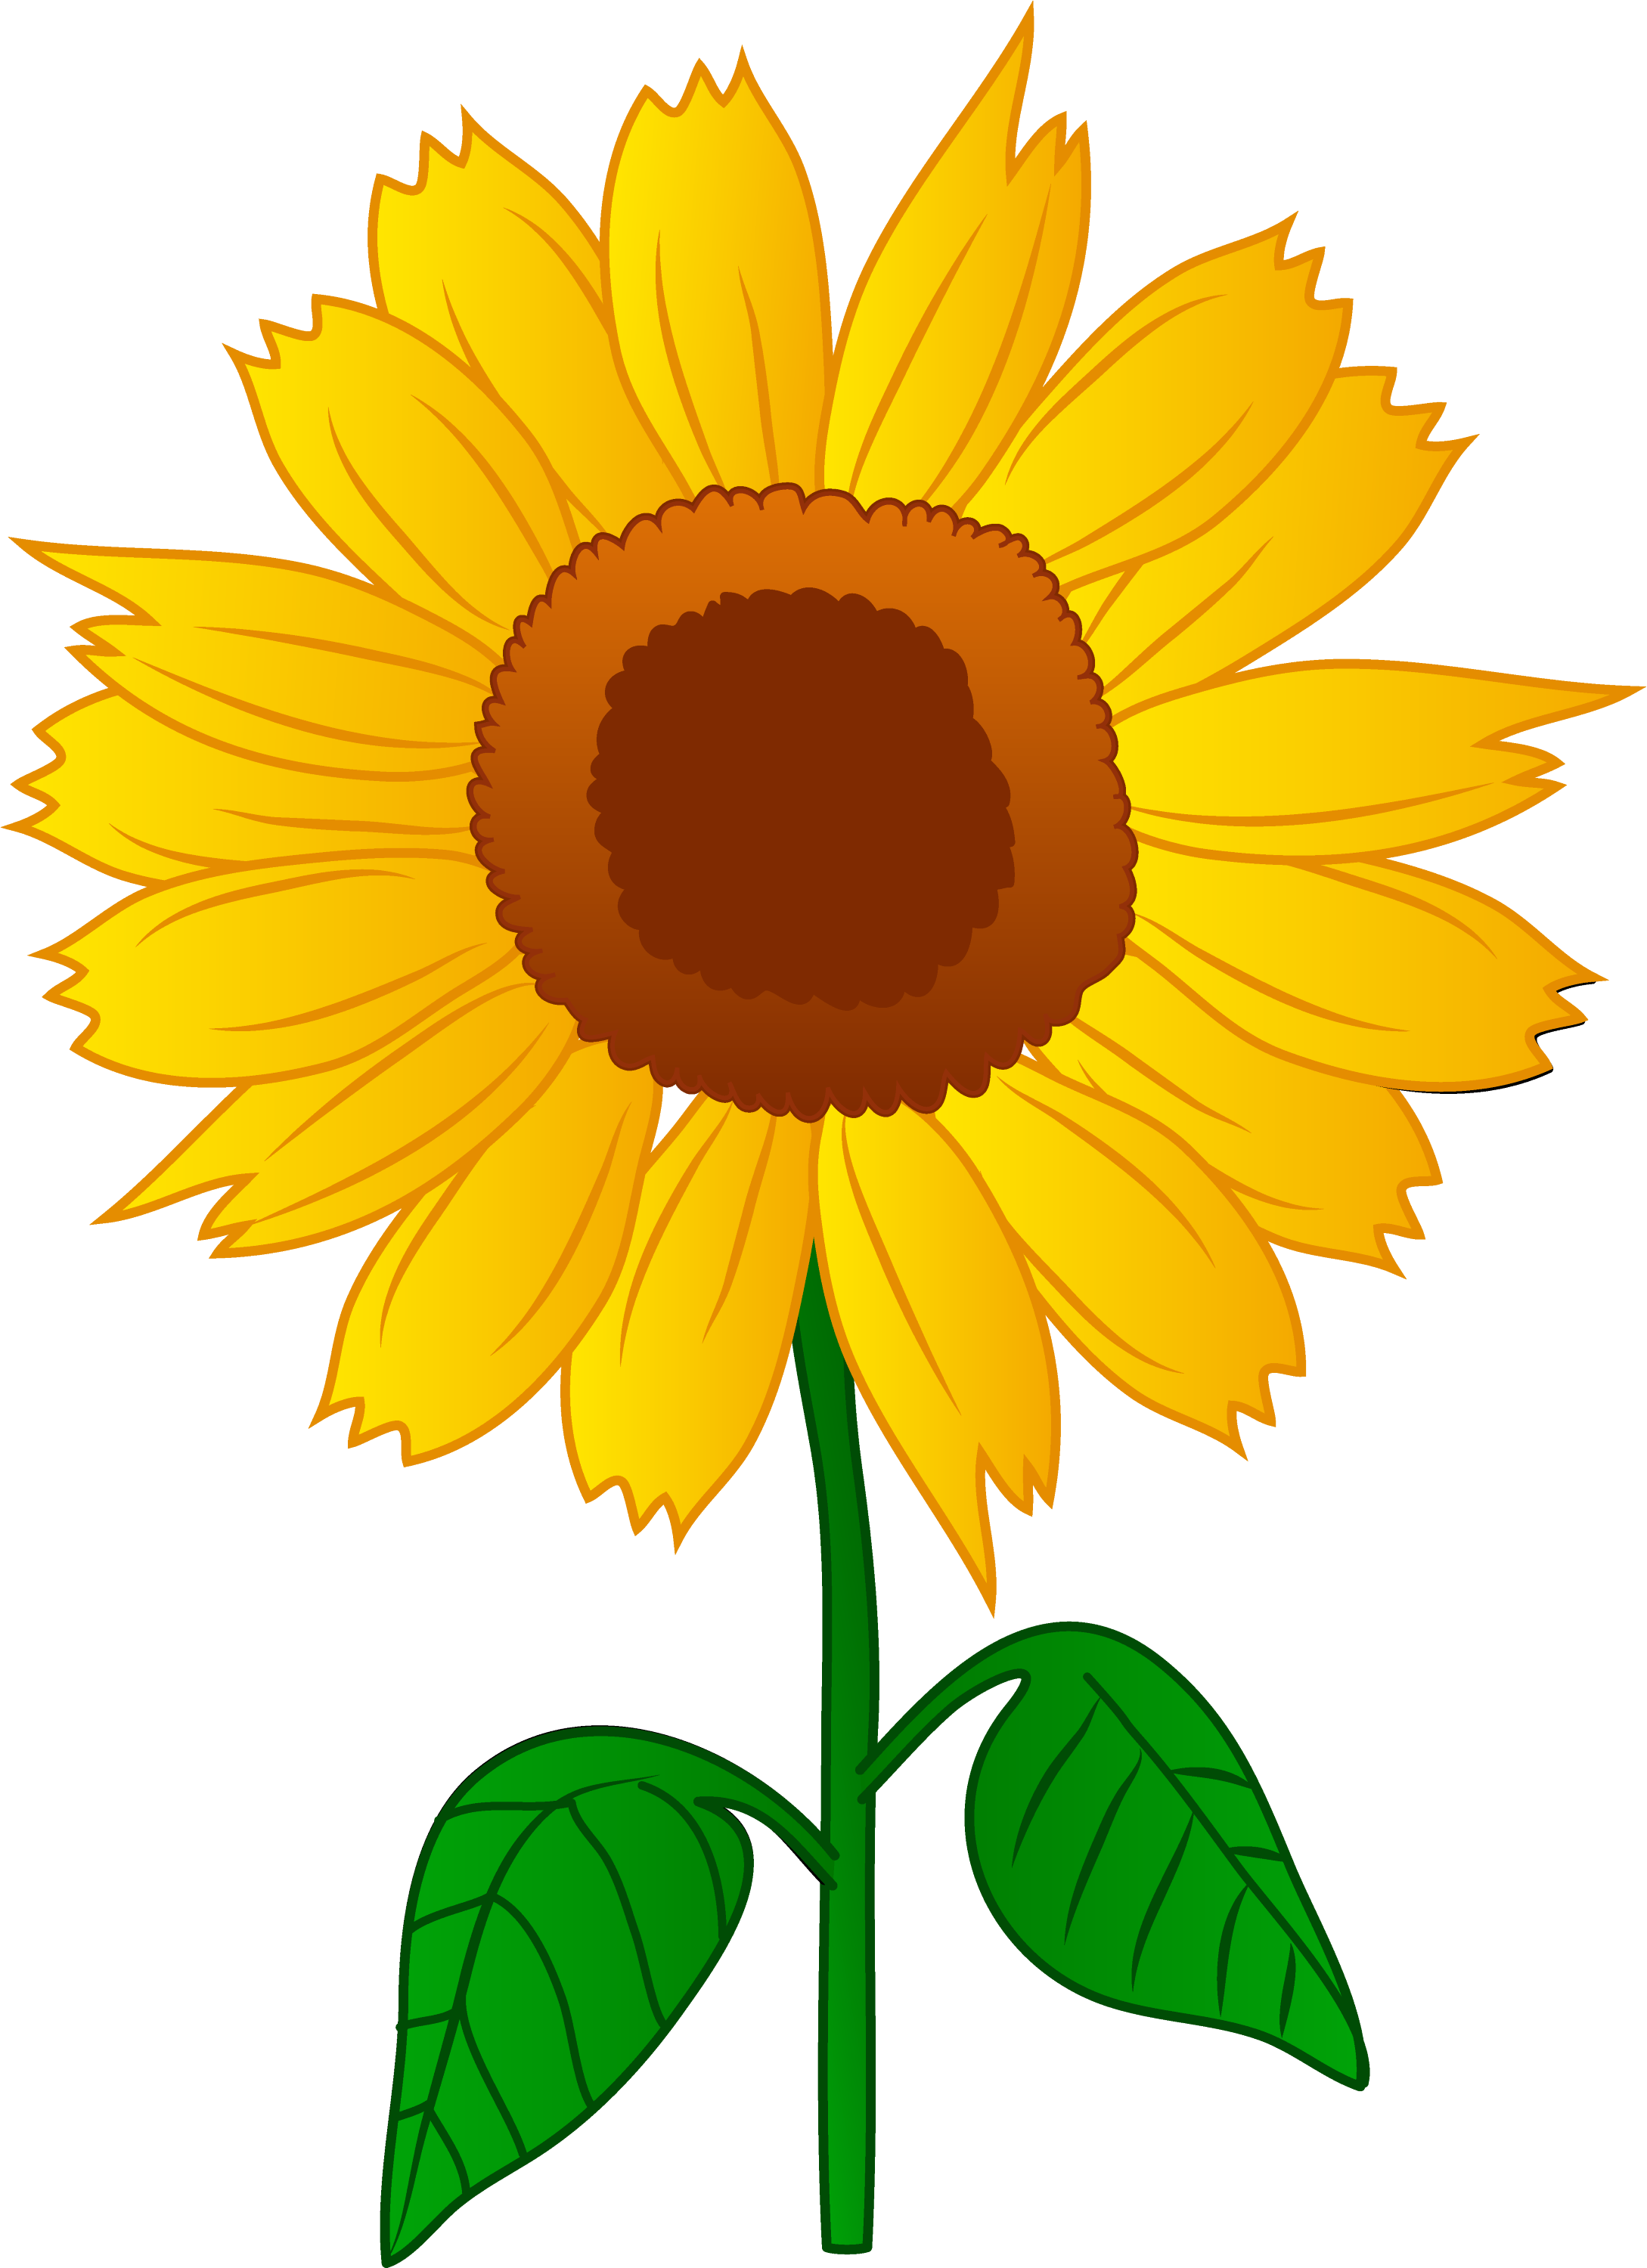 clip art borders sunflowers - photo #49